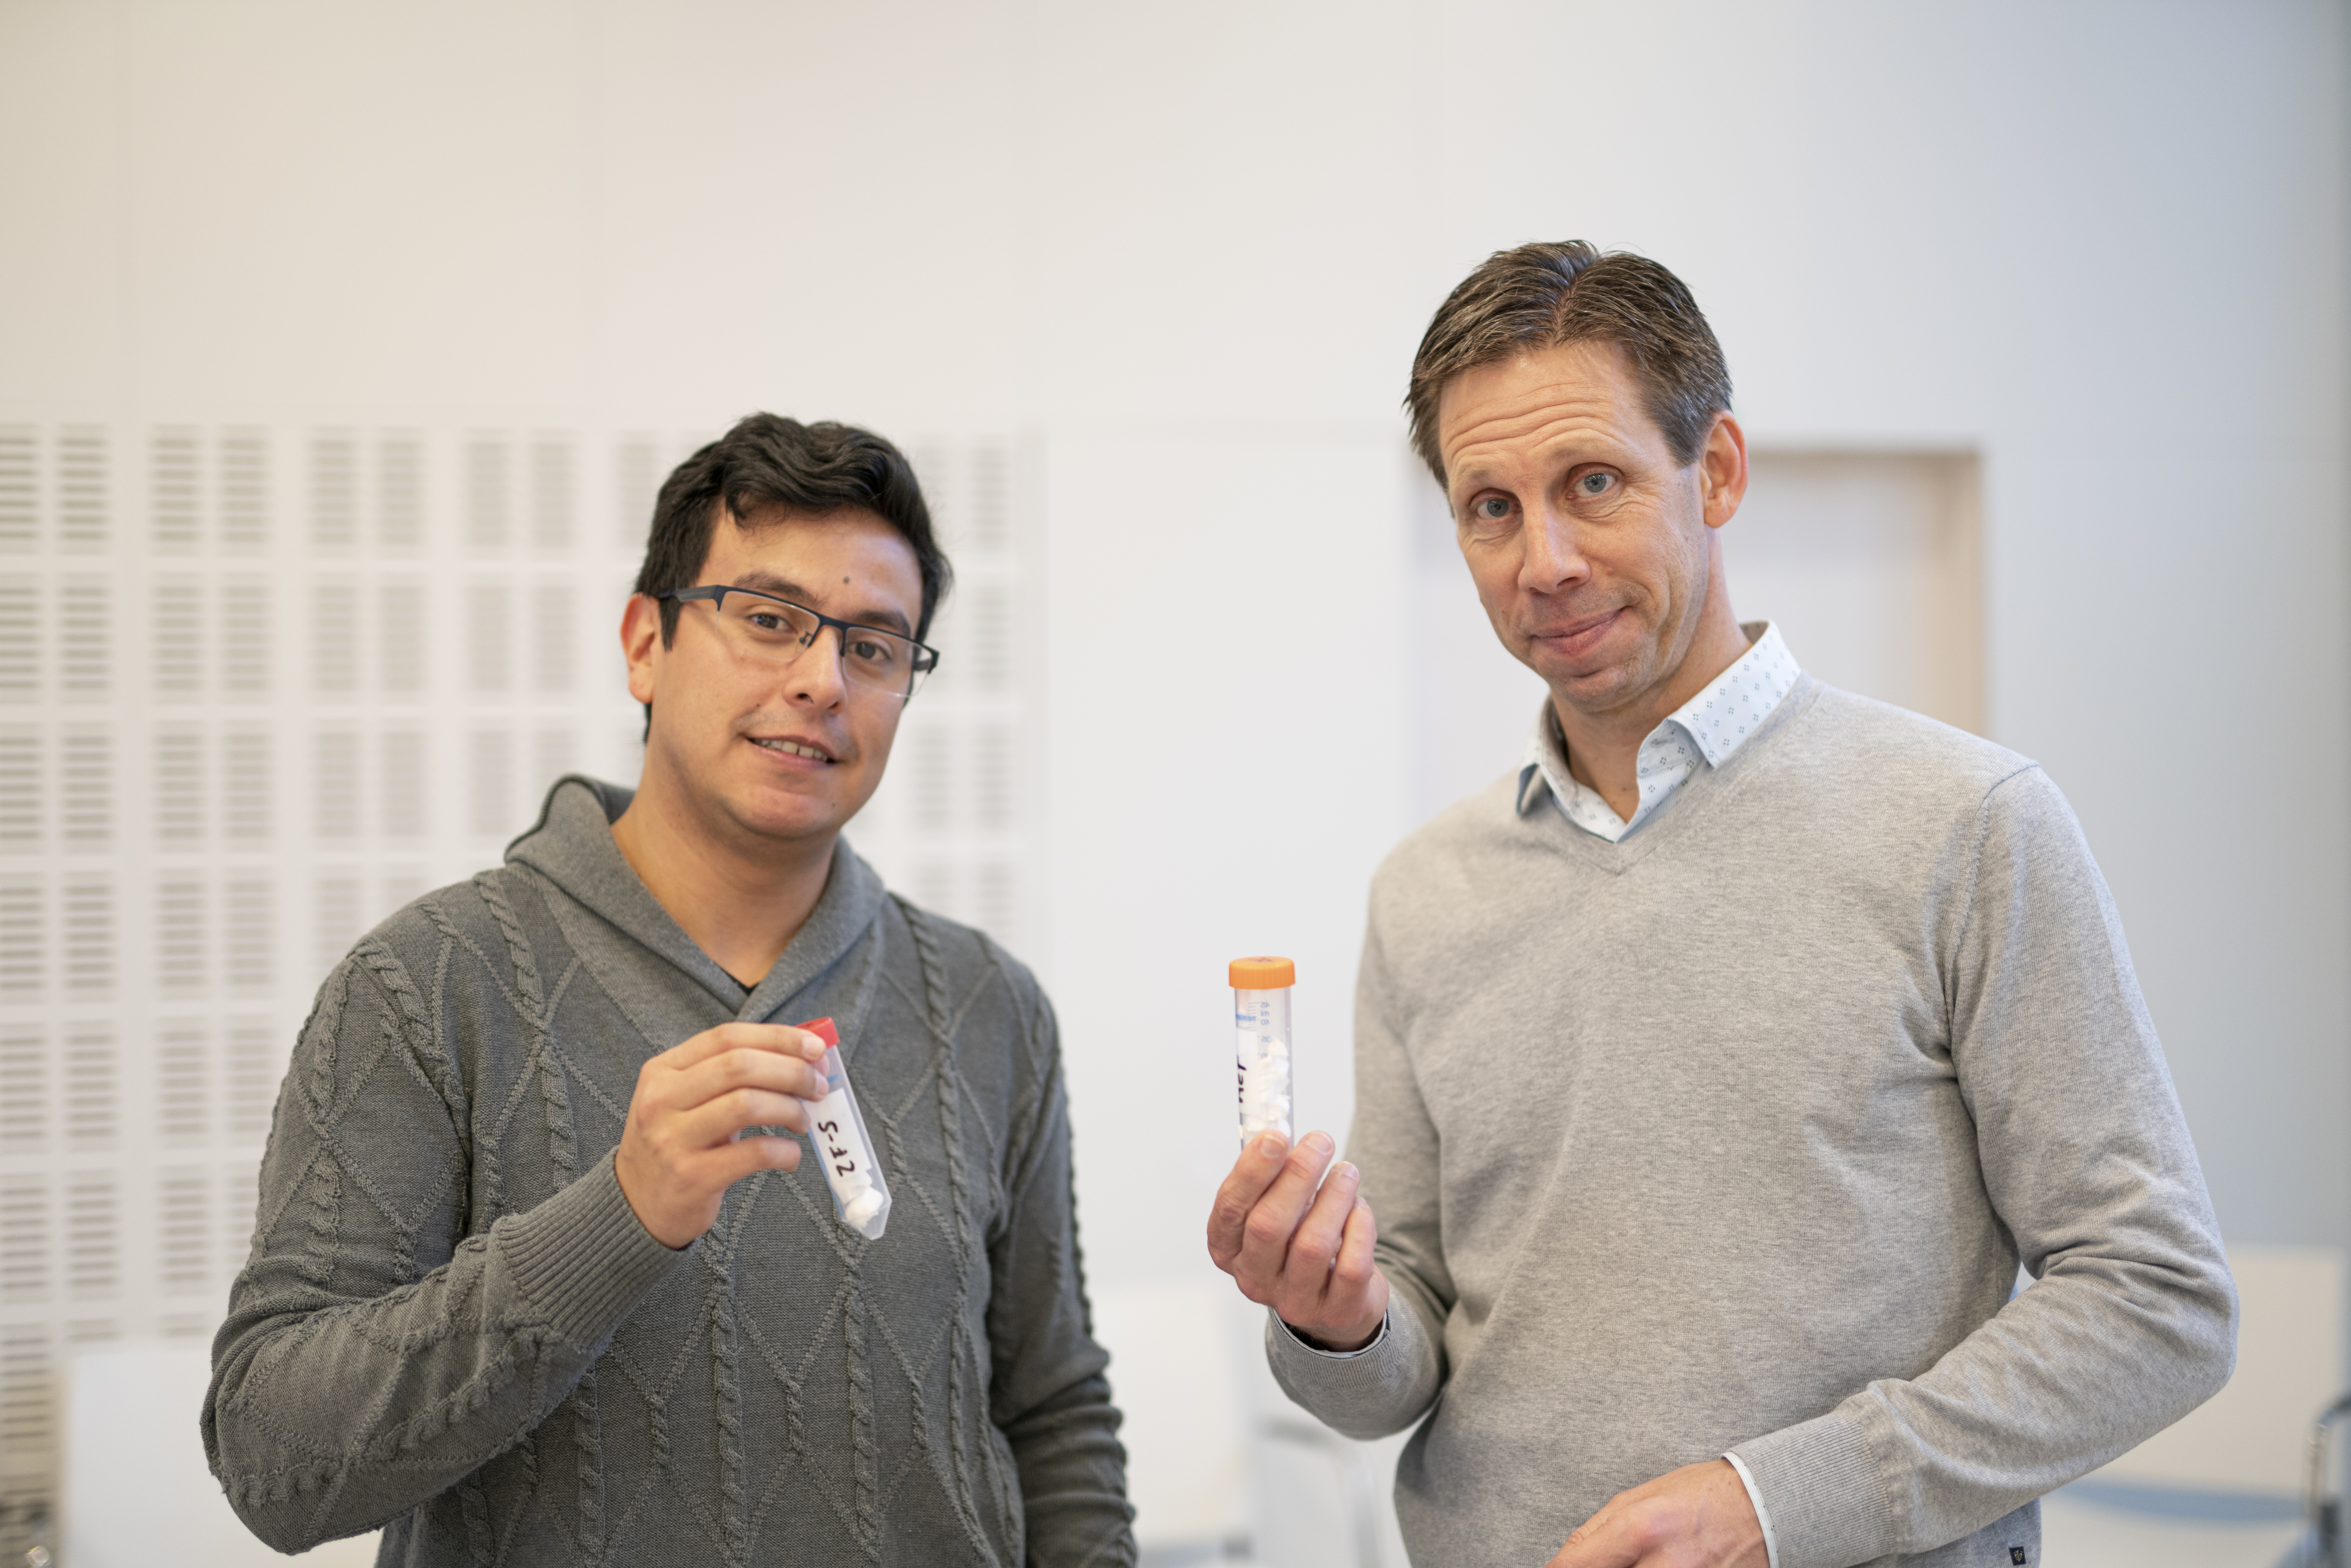 Walter Rosas Arbelaez, left, and Anders Palmqvist, right, holding samples of the new material